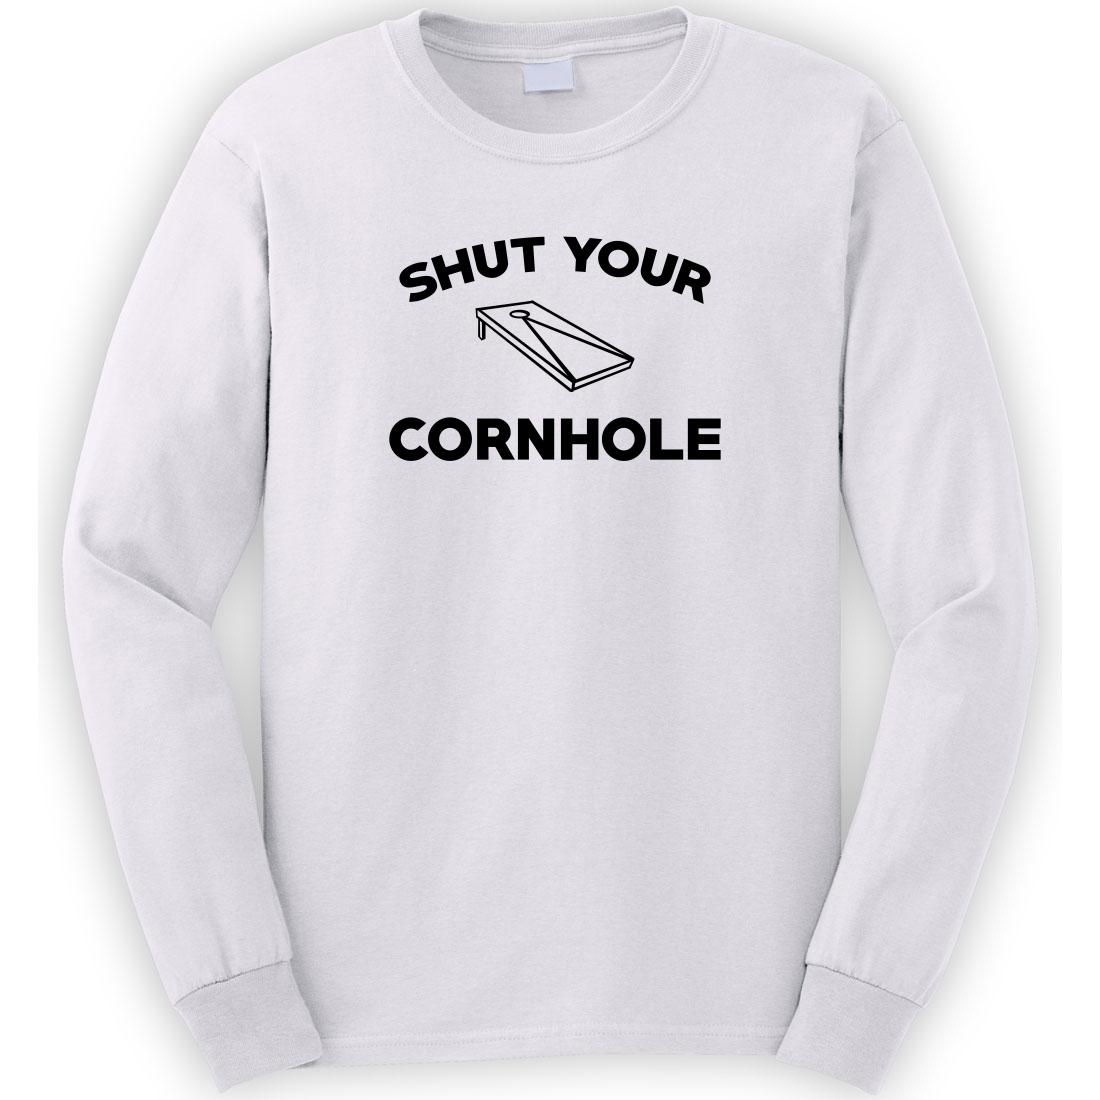 e26d7b72407 Uncensored Shirts - Shut Your Cornhole Long Sleeve Shirt - ID  2216 ...